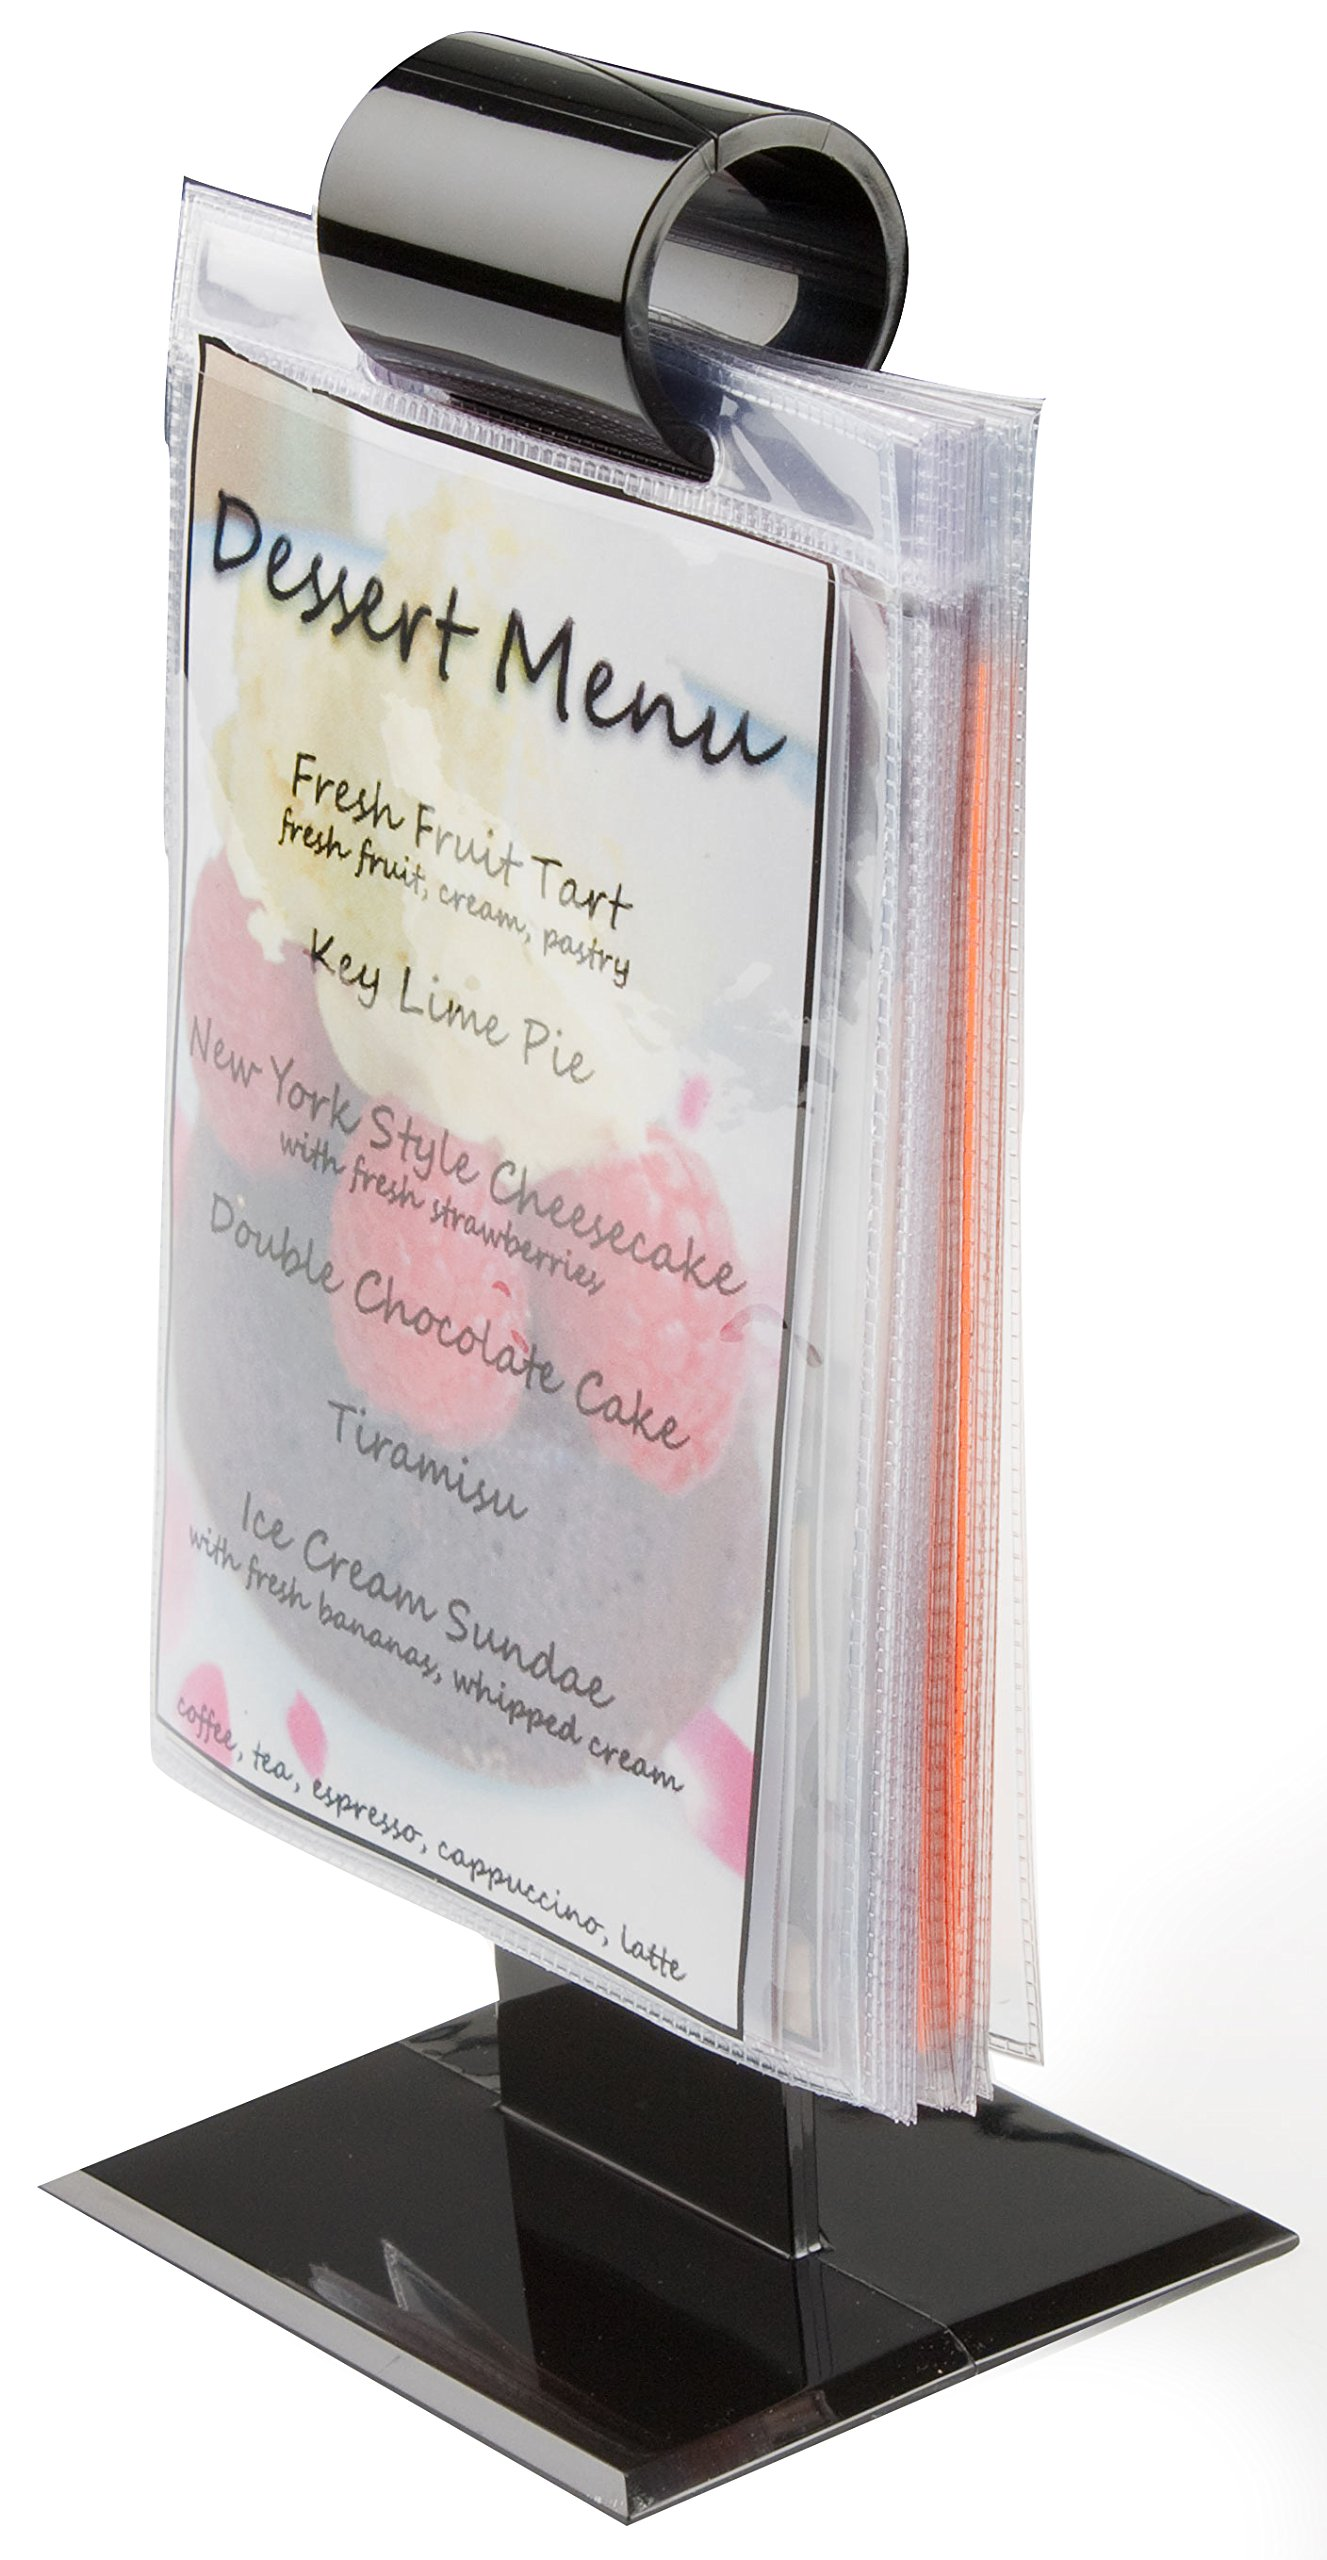 Set of 50 Restaurant Menu Holders, with 500 4x6 Sleeves, Black Plastic Table Tents by Displays2go